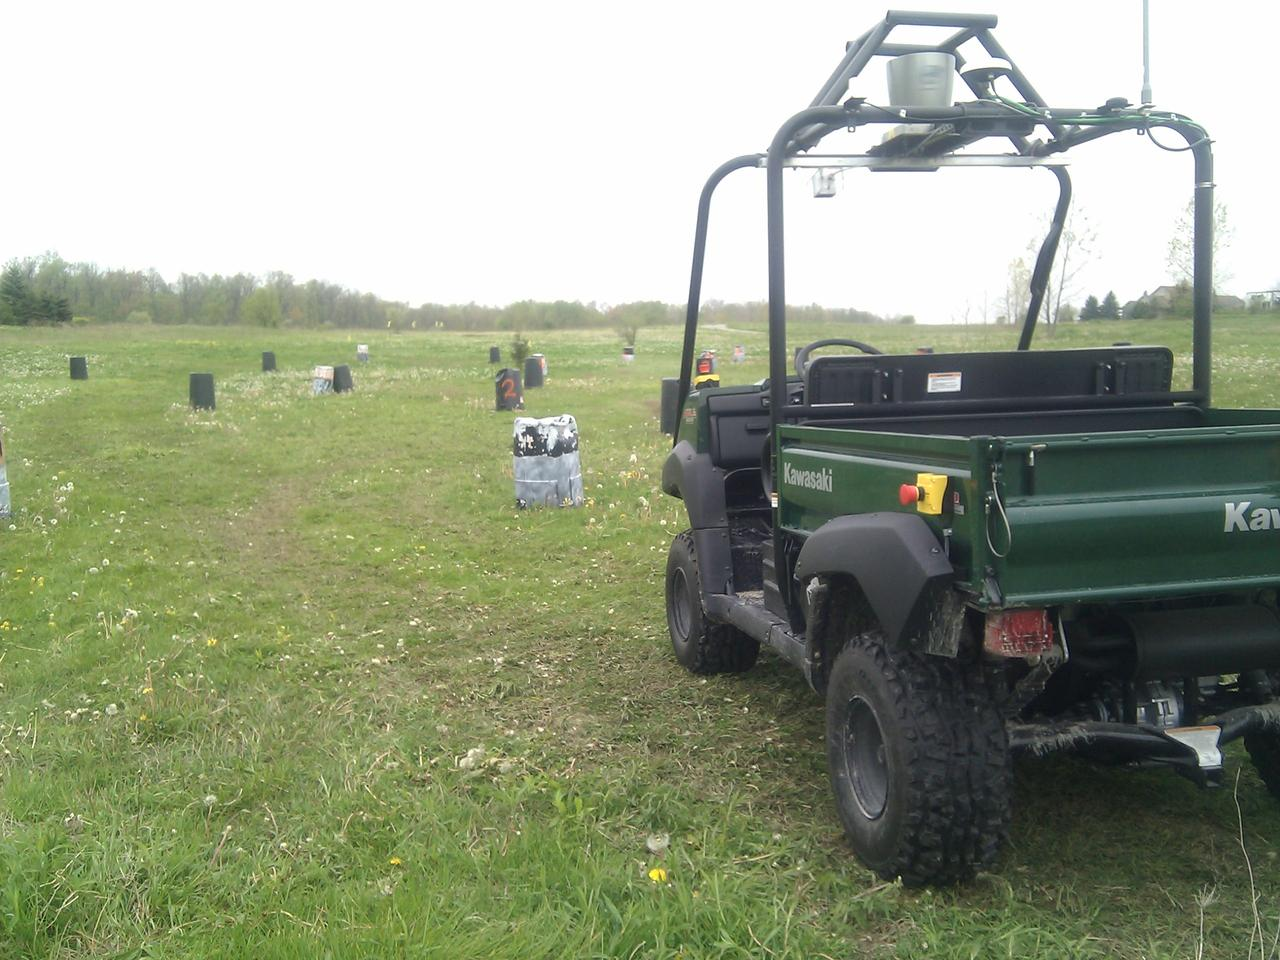 The highly modified Kawasaki 4010 Mule out on the obstacle-laden test range (Photo courtesy of Sterling Anderson)